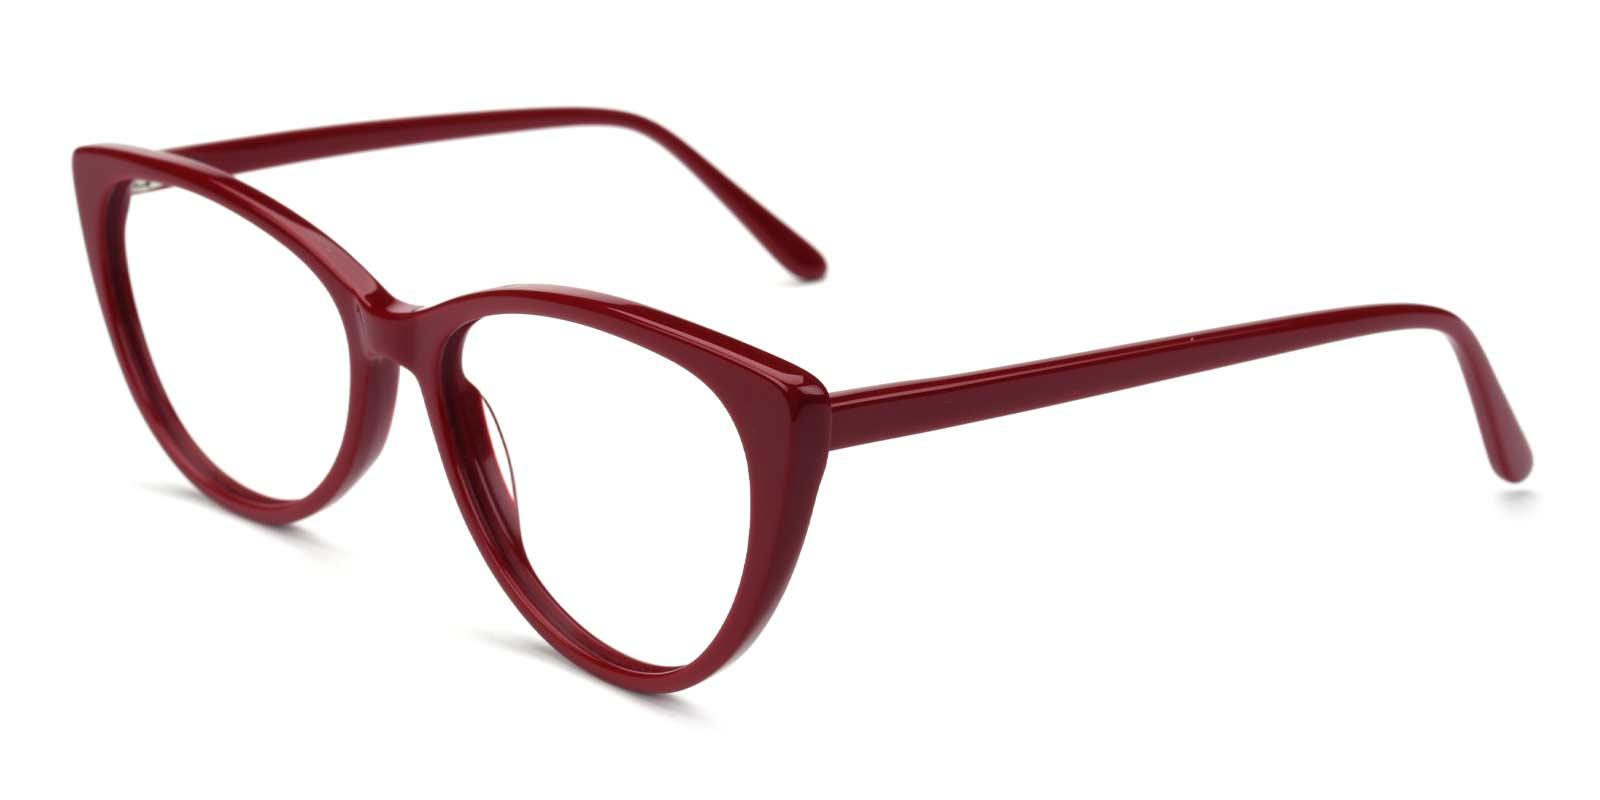 Law-Red-Cat-Acetate-Eyeglasses-additional1